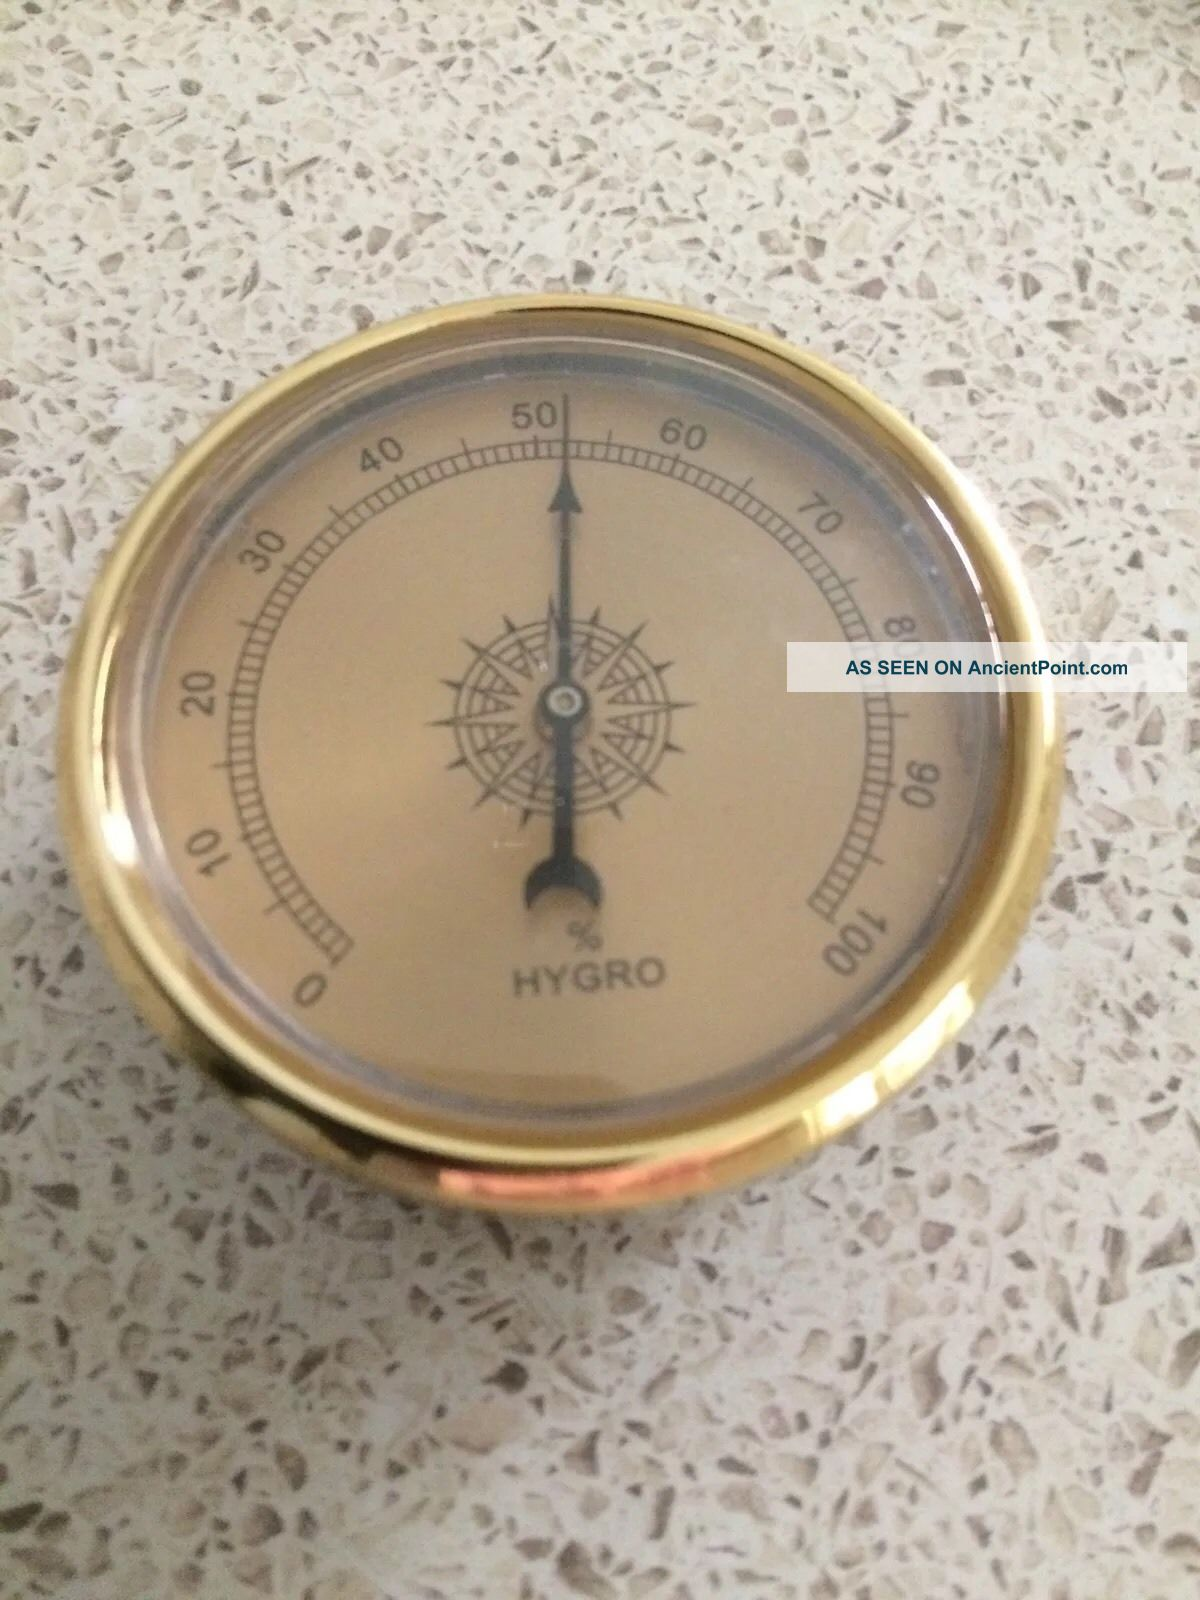 Quality Precision Aneroid 60mm Hydrometer In Gold Ship Equipment photo